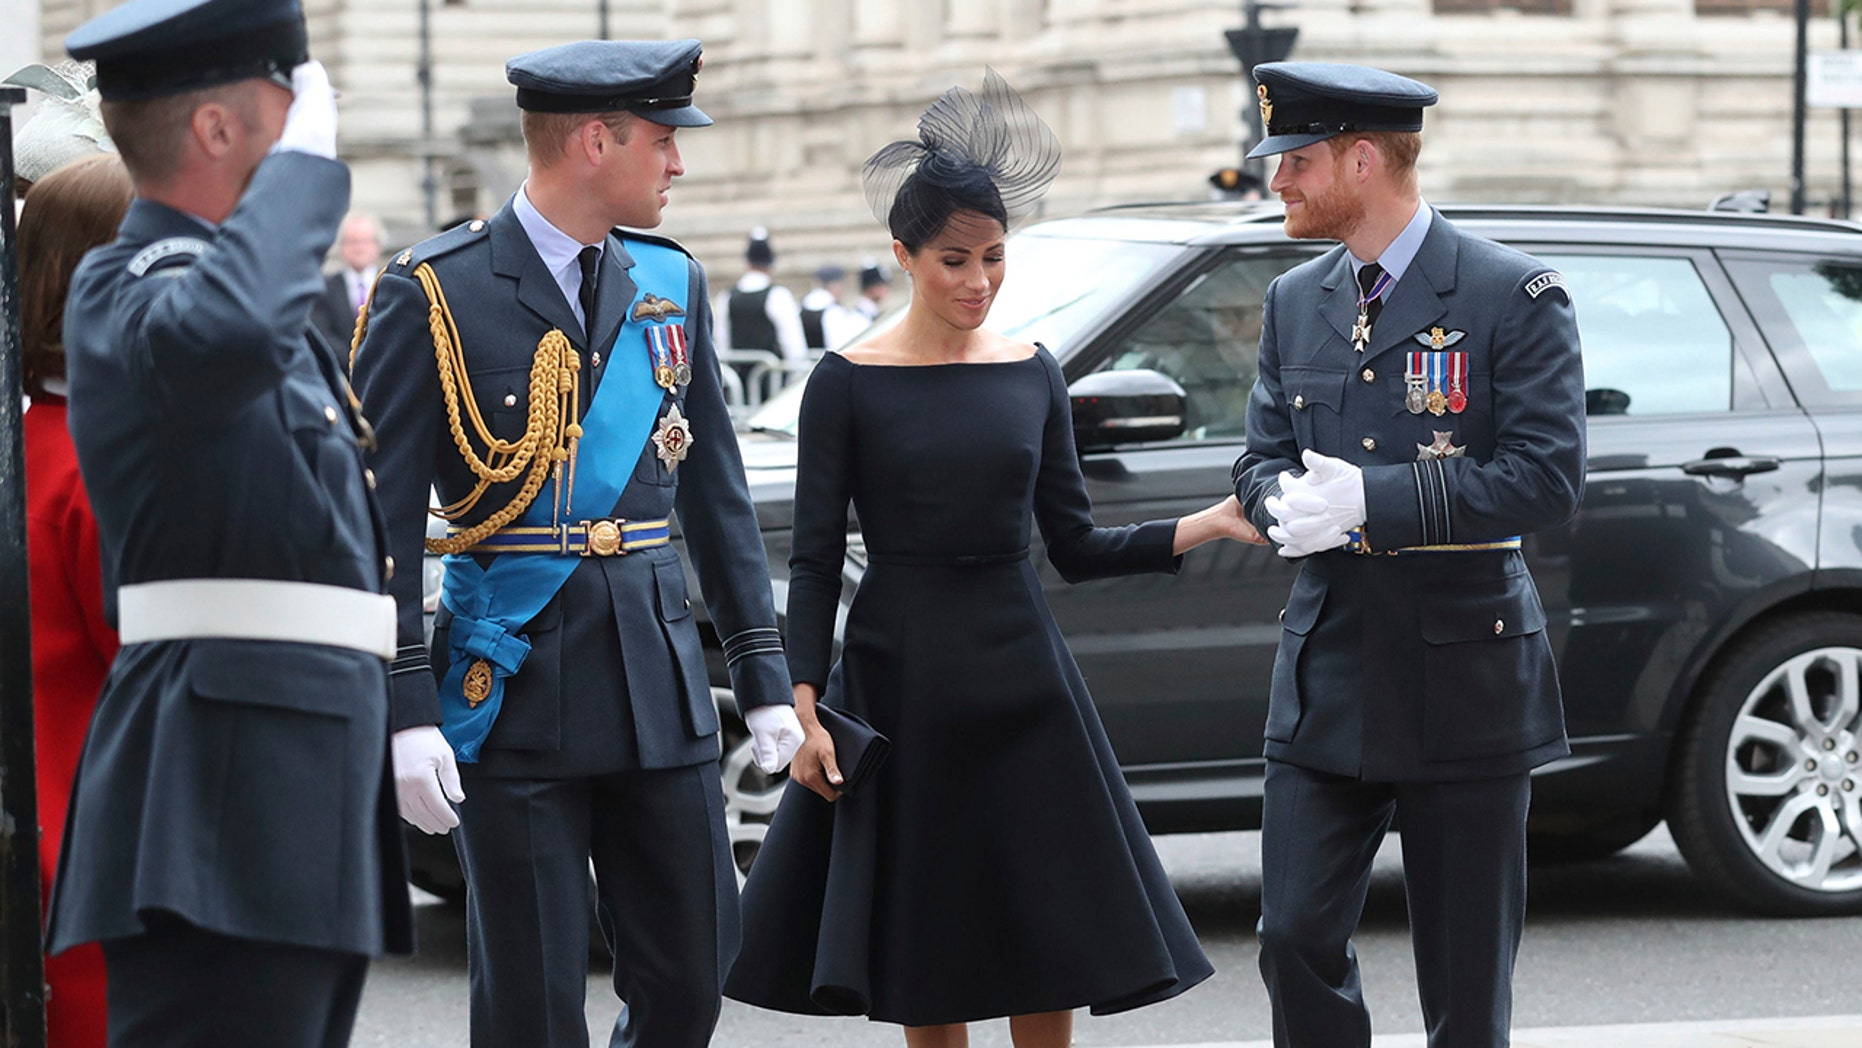 Meghan, the Duchess of Sussex, walks in with Prince Harry and Prince William as they arrive for a service at Westminster Abbey to mark the centenary of the Royal Air Force.